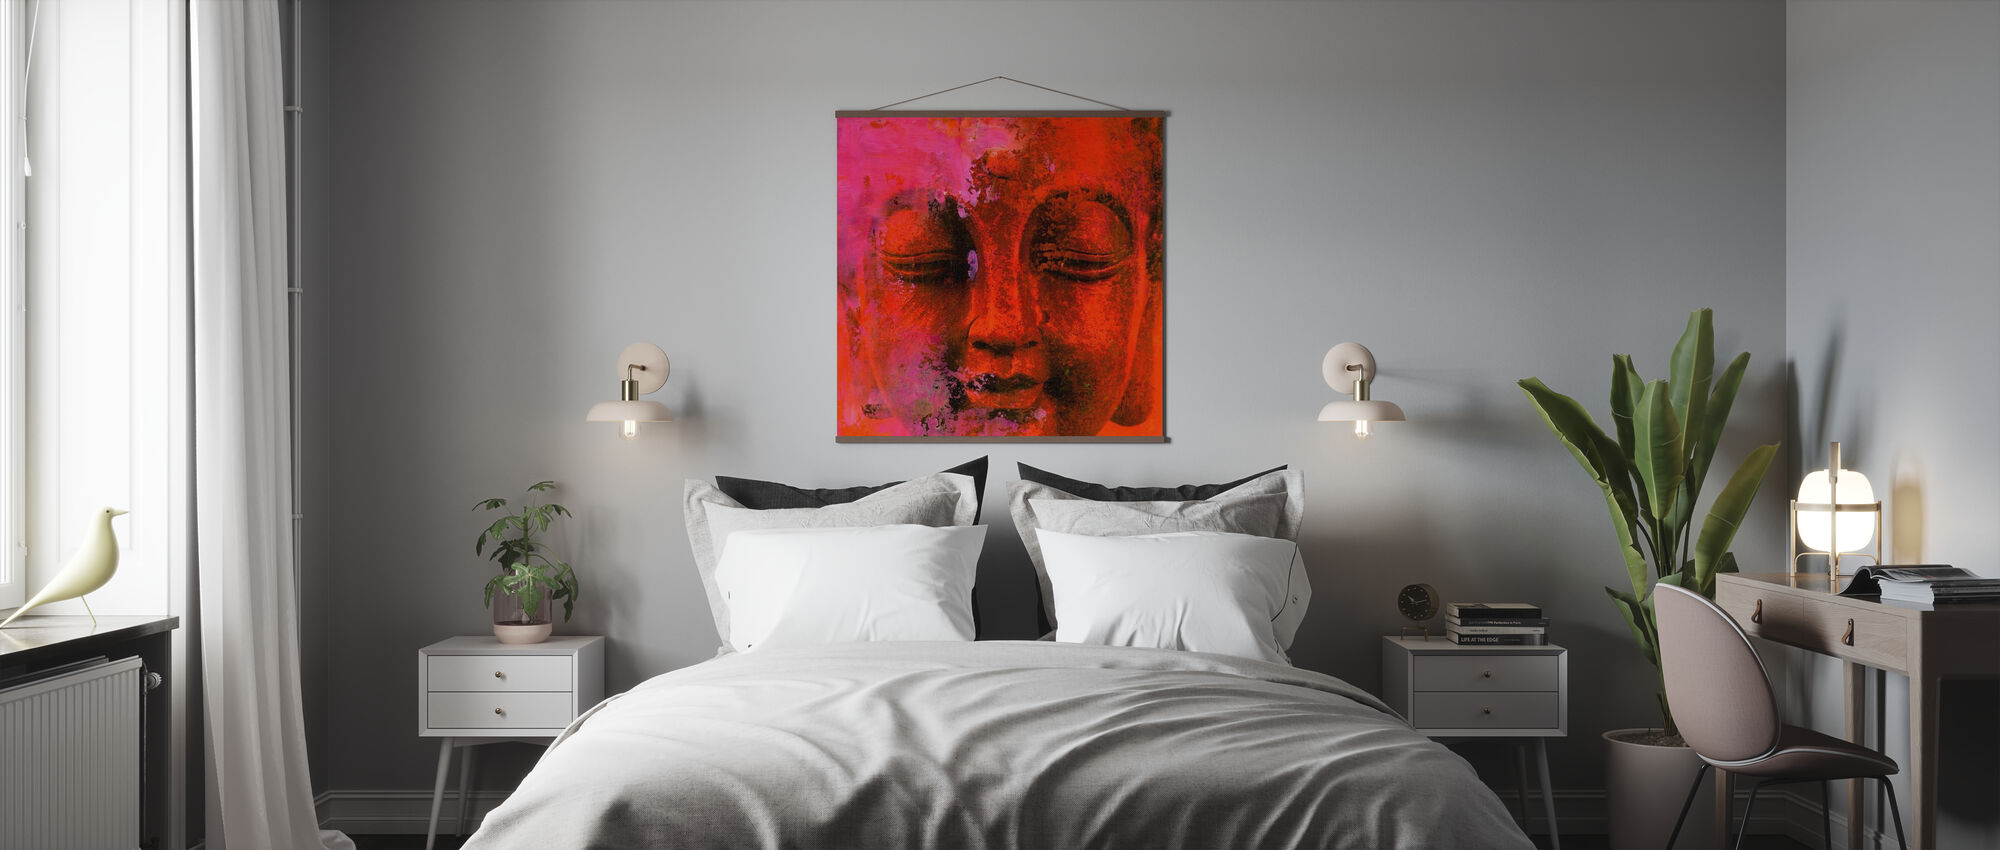 Red Buddha - Poster - Bedroom